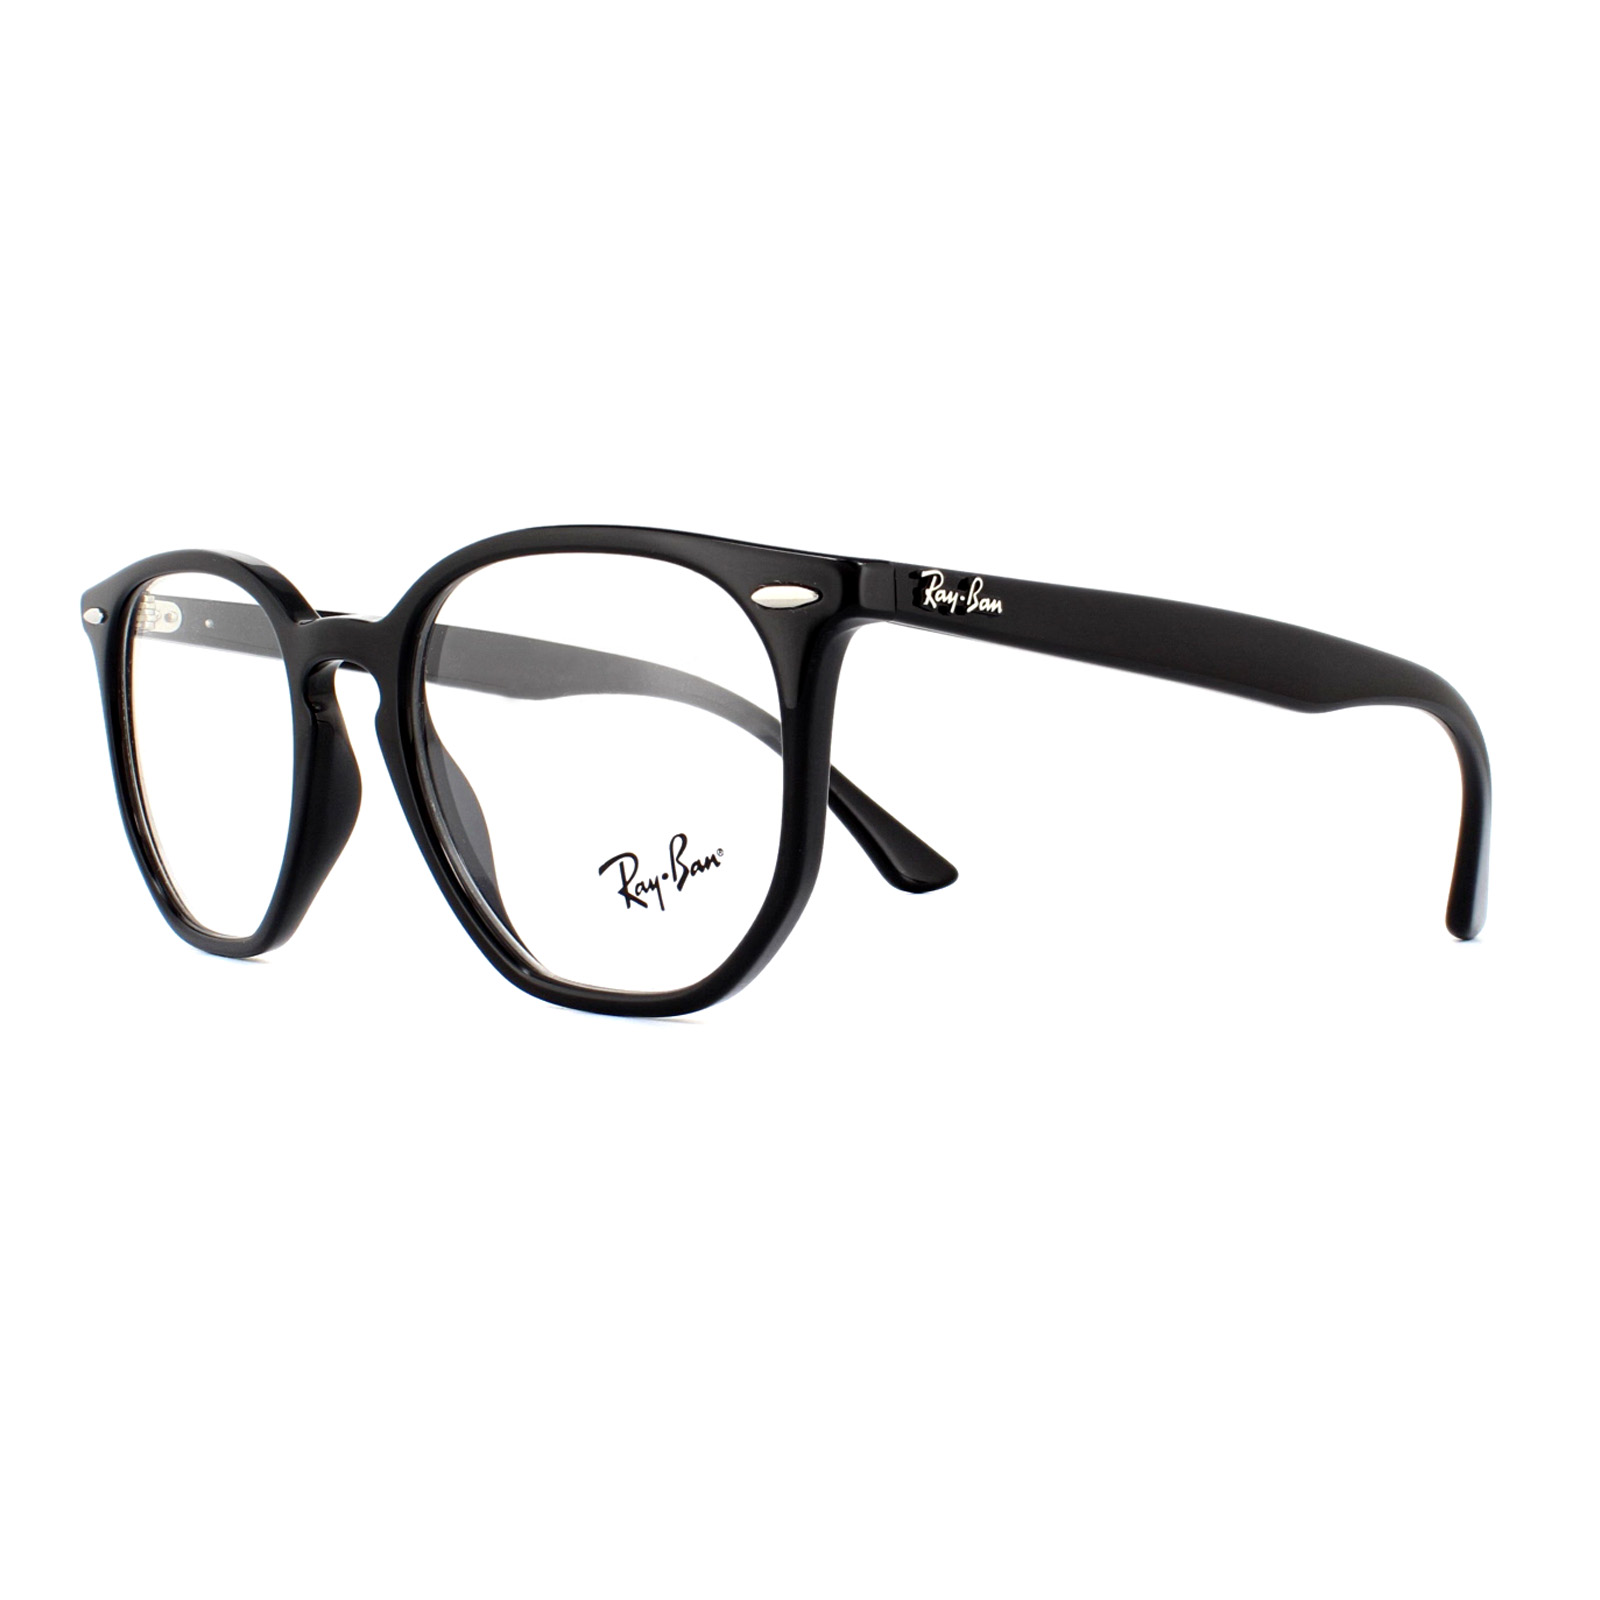 1adbcbd5fb Ray-Ban Glasses Frames 7151 Hexagonal 2000 Black 50mm 8053672915259 ...